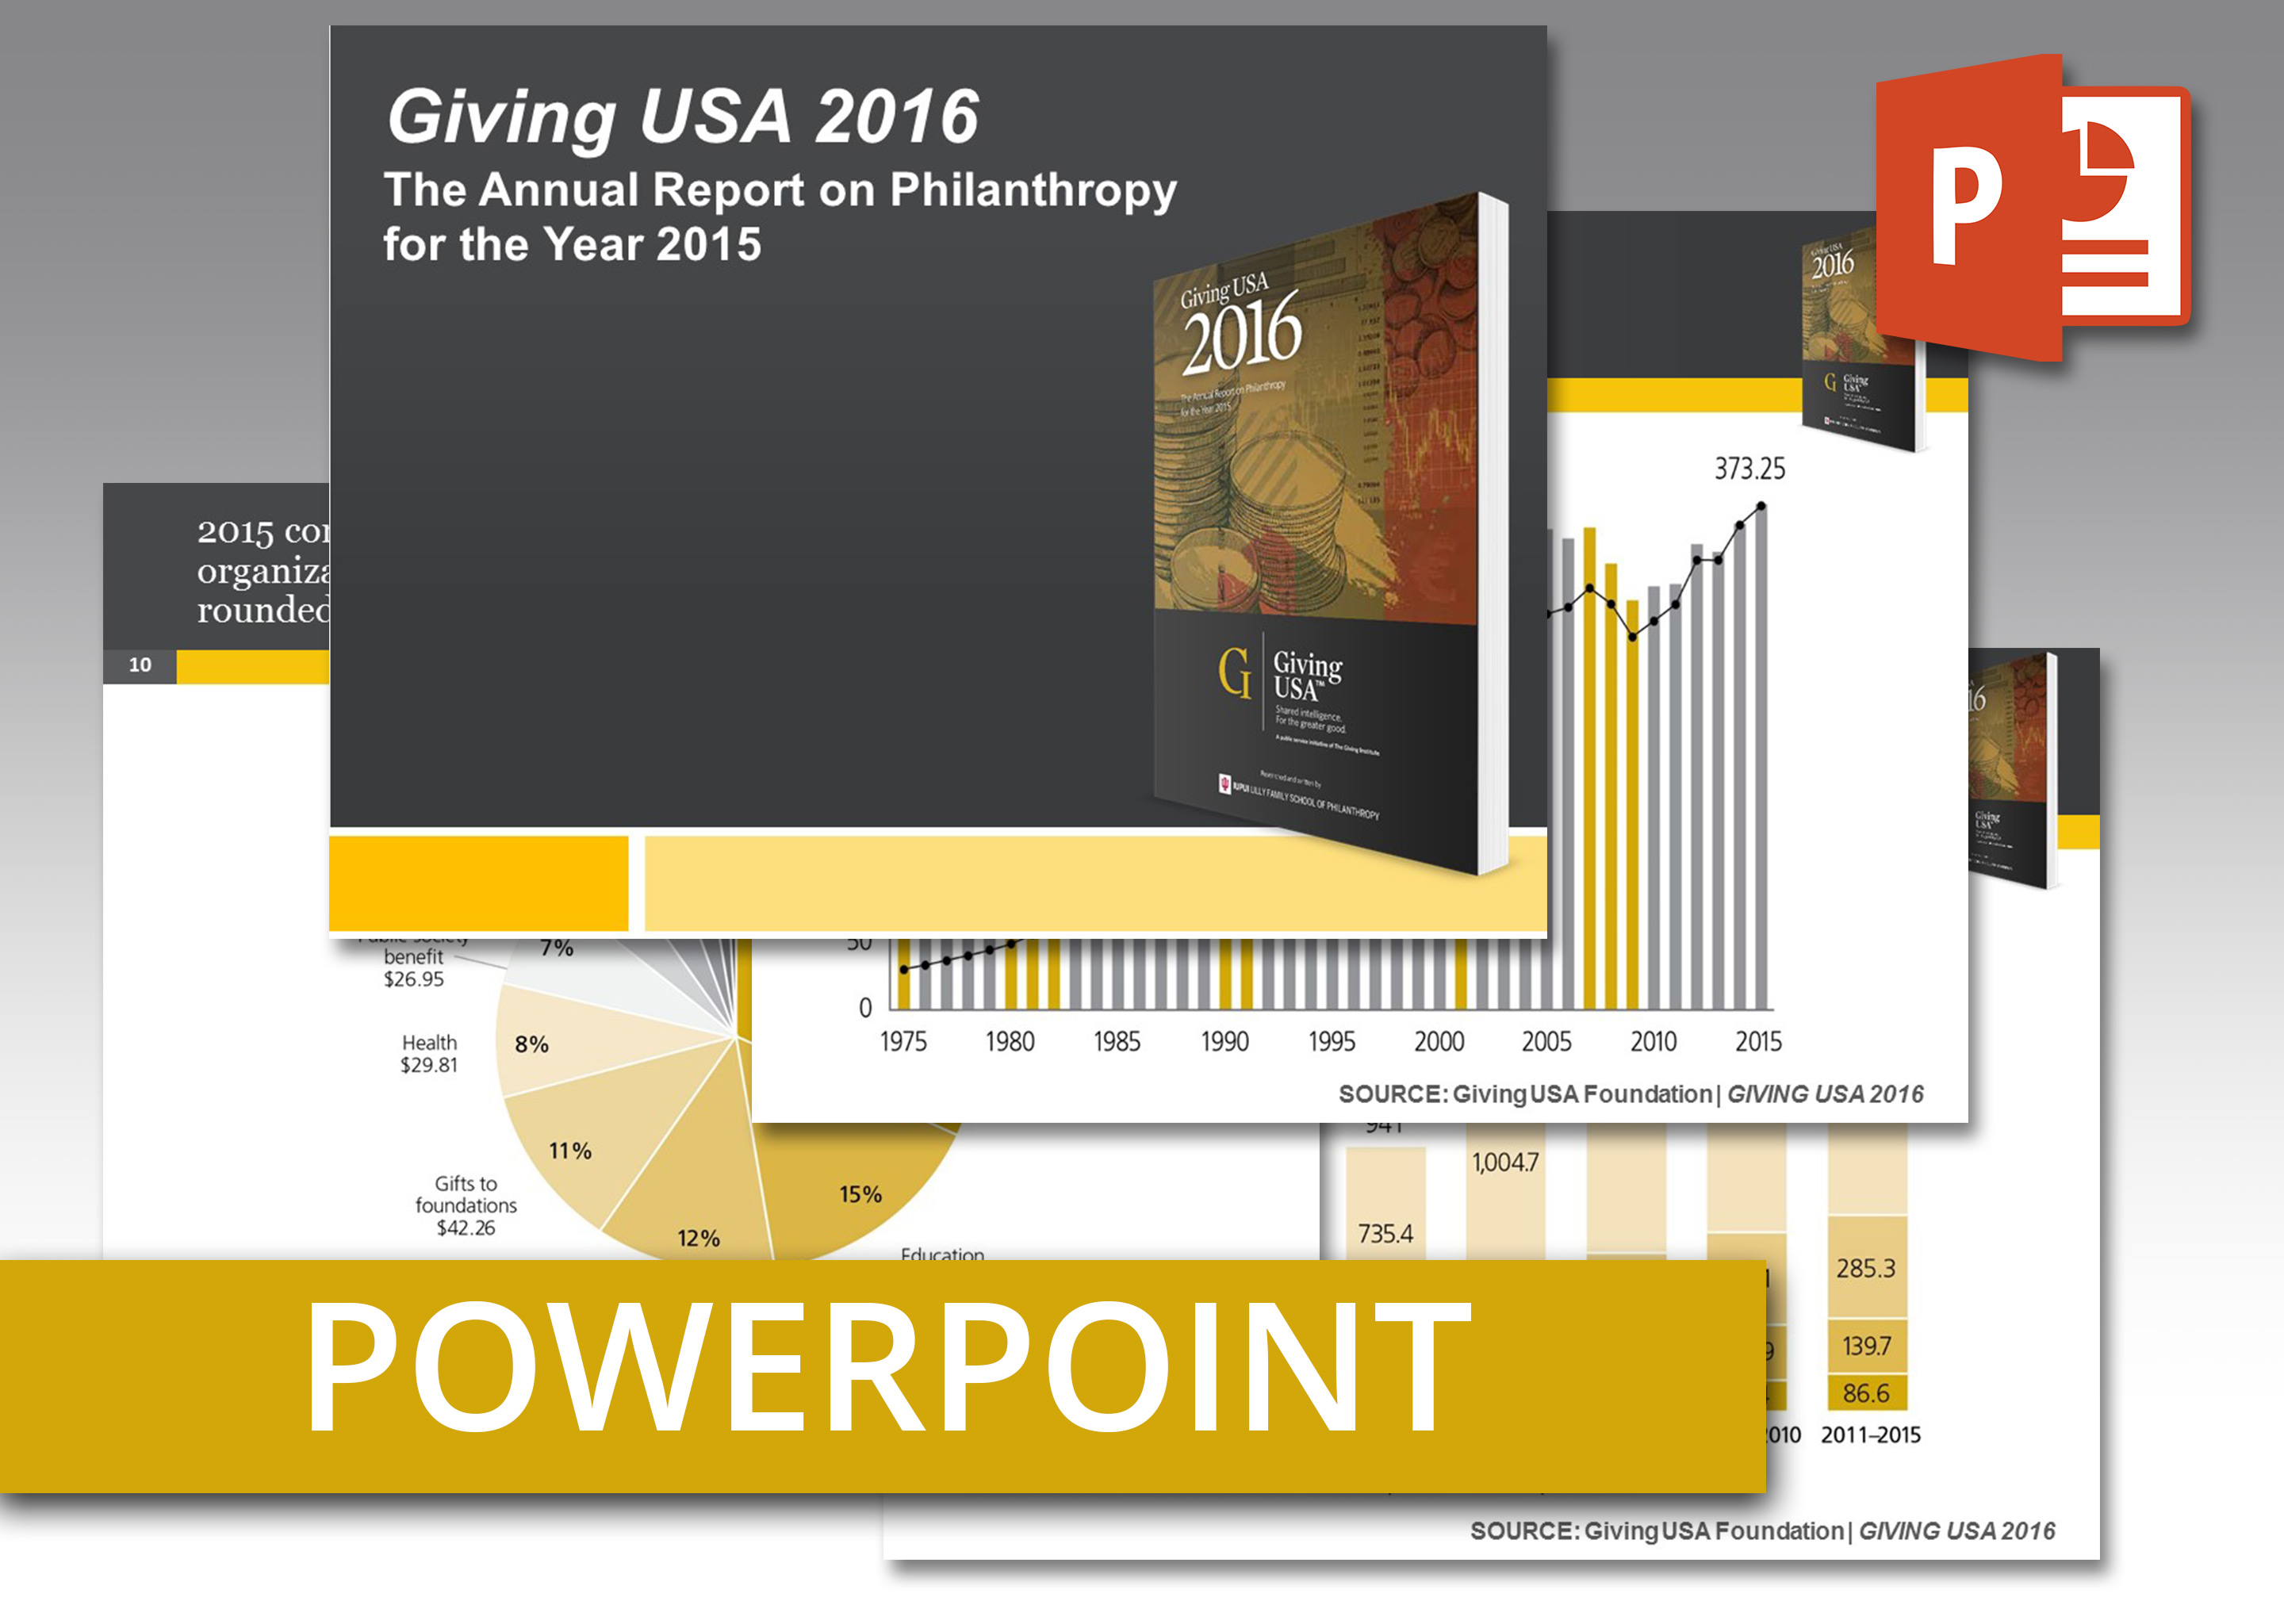 Usdgus  Personable Giving Usa  Powerpoint An Easytouse Presentation Of Report  With Heavenly Giving Usa  Powerpoint An Easytouse Presentation Of Report Findings Including Talking Points With Extraordinary Sales Training Powerpoint Presentation Free Also Straight Line Graphs Powerpoint In Addition Tools For Powerpoint And Living Vs Nonliving Powerpoint As Well As History Of English Language Powerpoint Additionally Gulf War Powerpoint From Givingusaorg With Usdgus  Heavenly Giving Usa  Powerpoint An Easytouse Presentation Of Report  With Extraordinary Giving Usa  Powerpoint An Easytouse Presentation Of Report Findings Including Talking Points And Personable Sales Training Powerpoint Presentation Free Also Straight Line Graphs Powerpoint In Addition Tools For Powerpoint From Givingusaorg